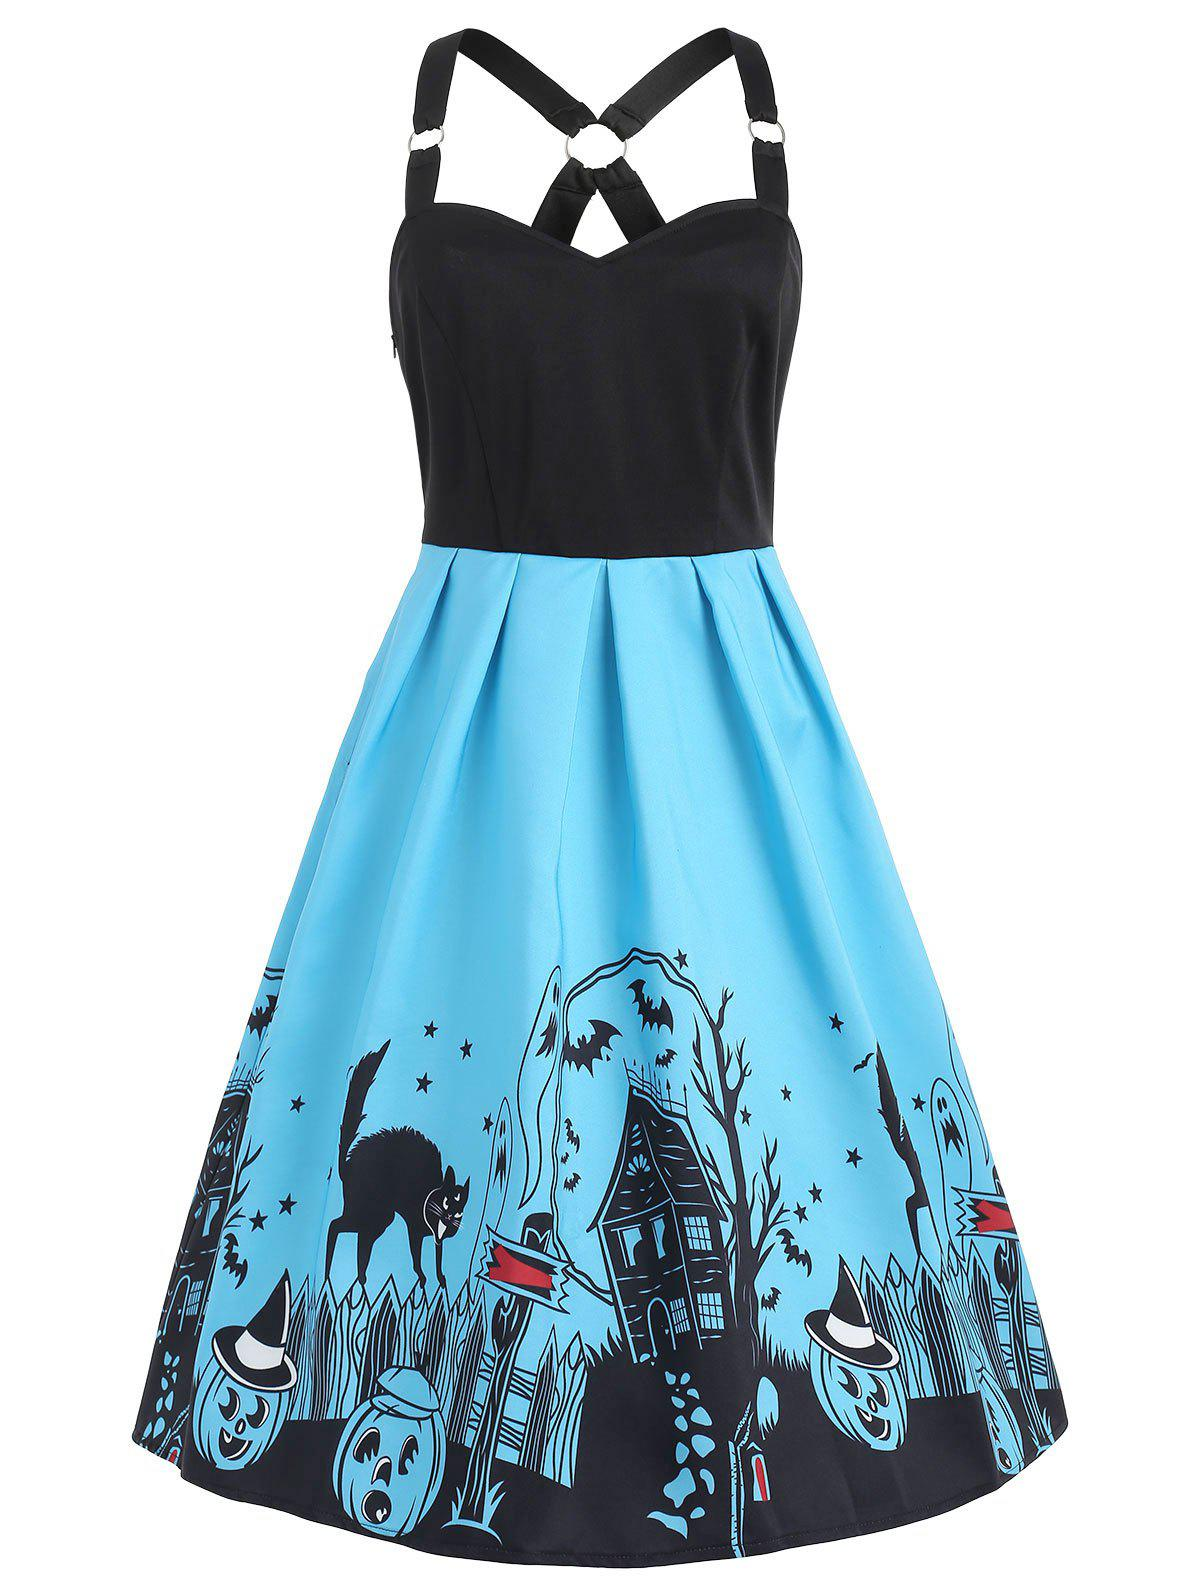 Trendy Sleeveless Halloween Black Cats Dress